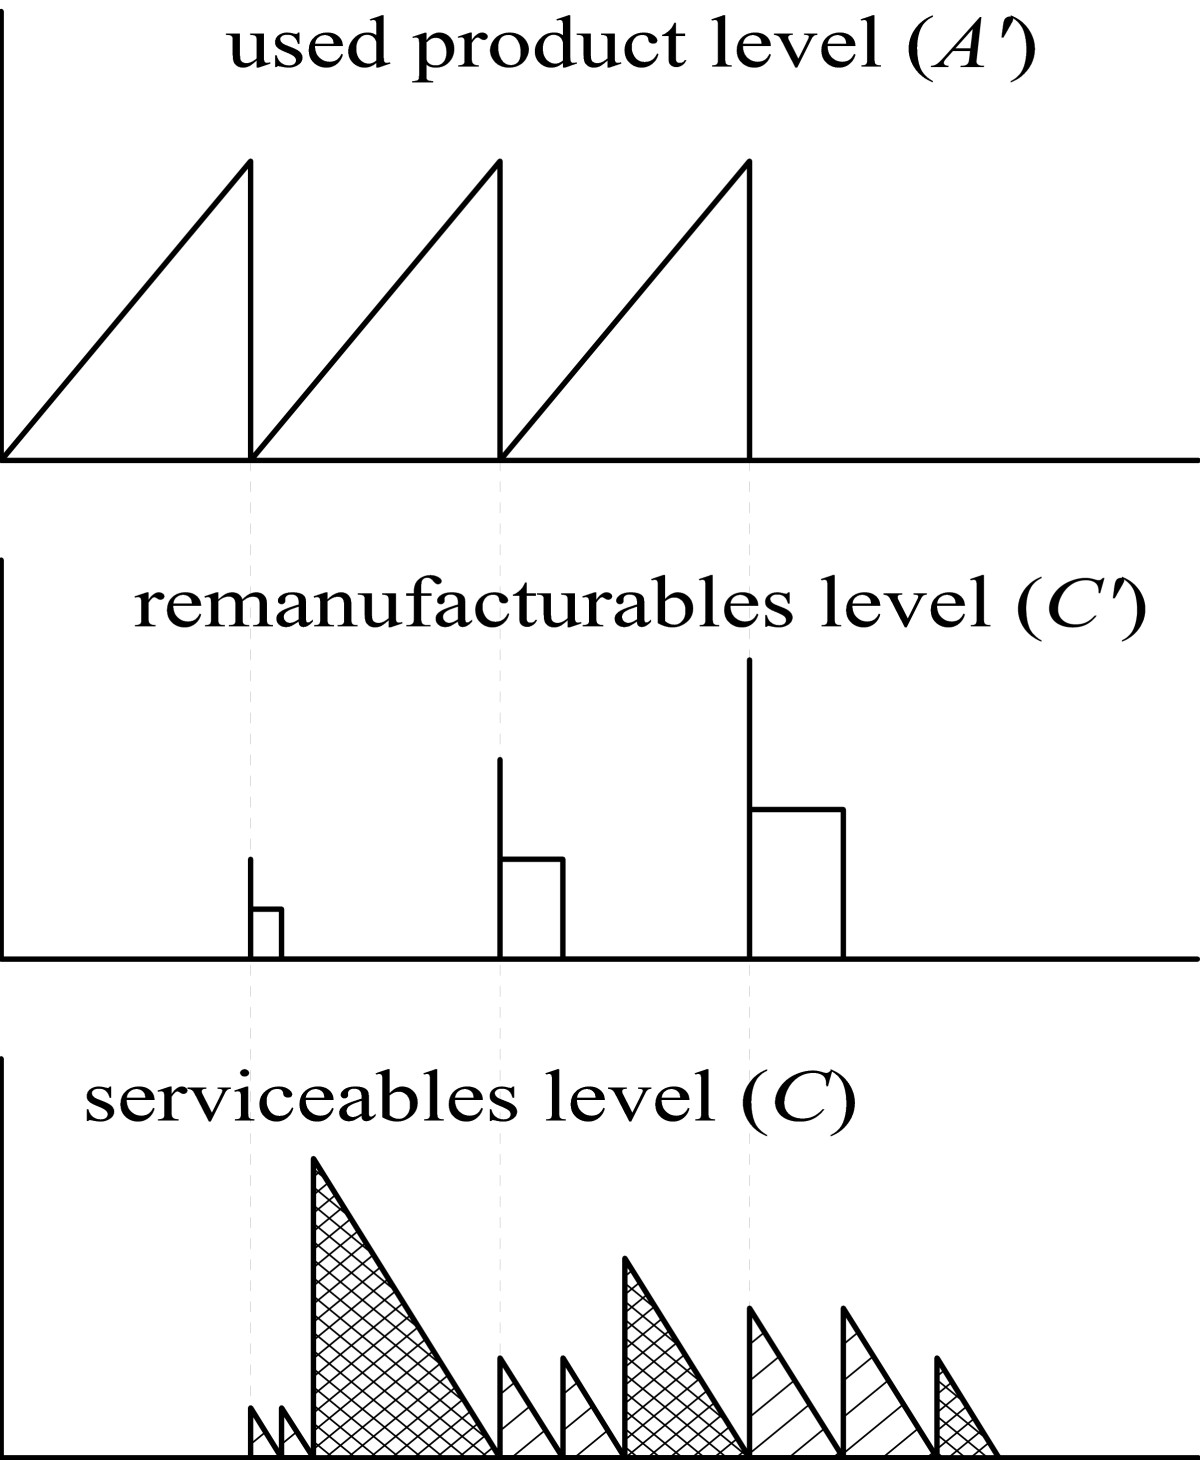 http://static-content.springer.com/image/art%3A10.1186%2F2210-4690-1-3/MediaObjects/13243_2011_Article_3_Fig3_HTML.jpg